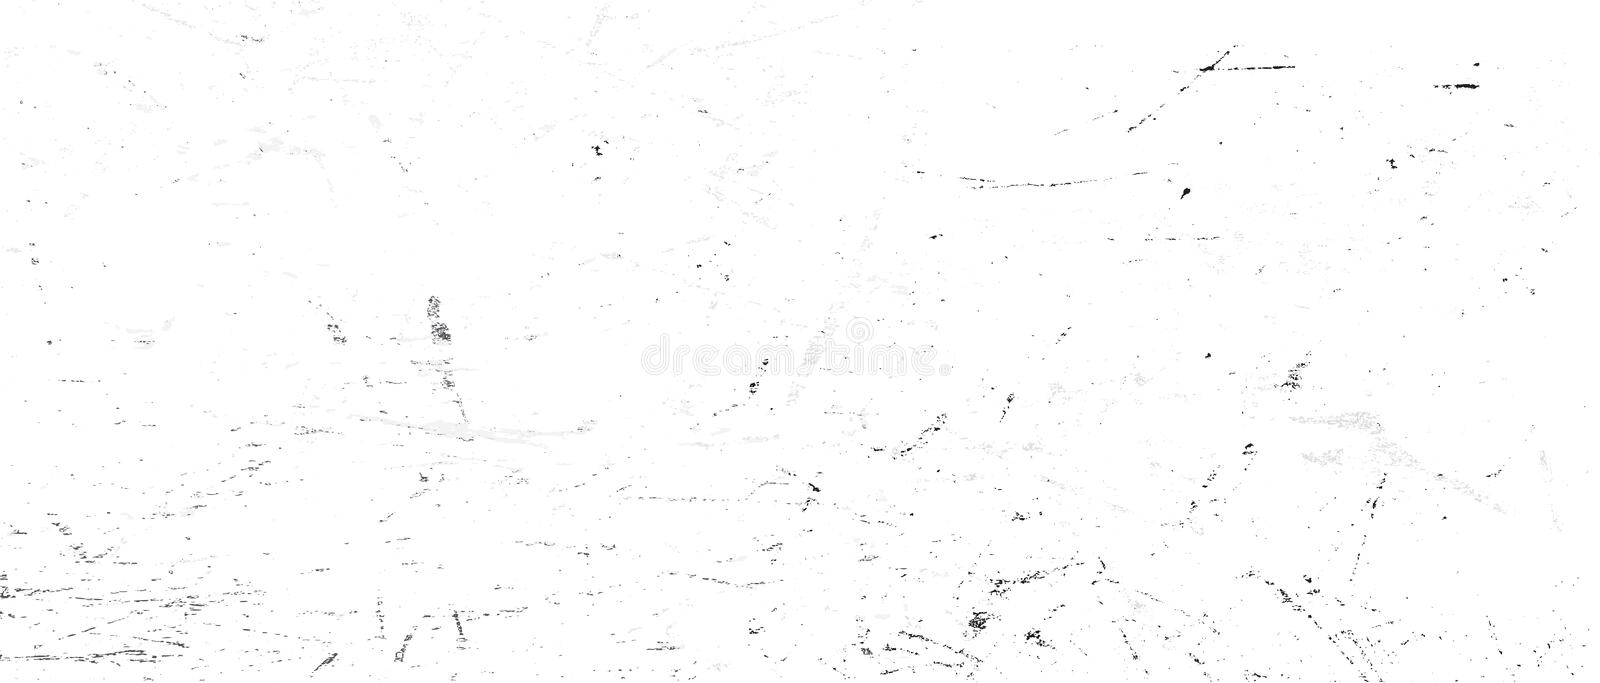 Simple black and white abstract grunge background texture, vector template, grainy urban illustration design element. For creating grungy effects vector illustration